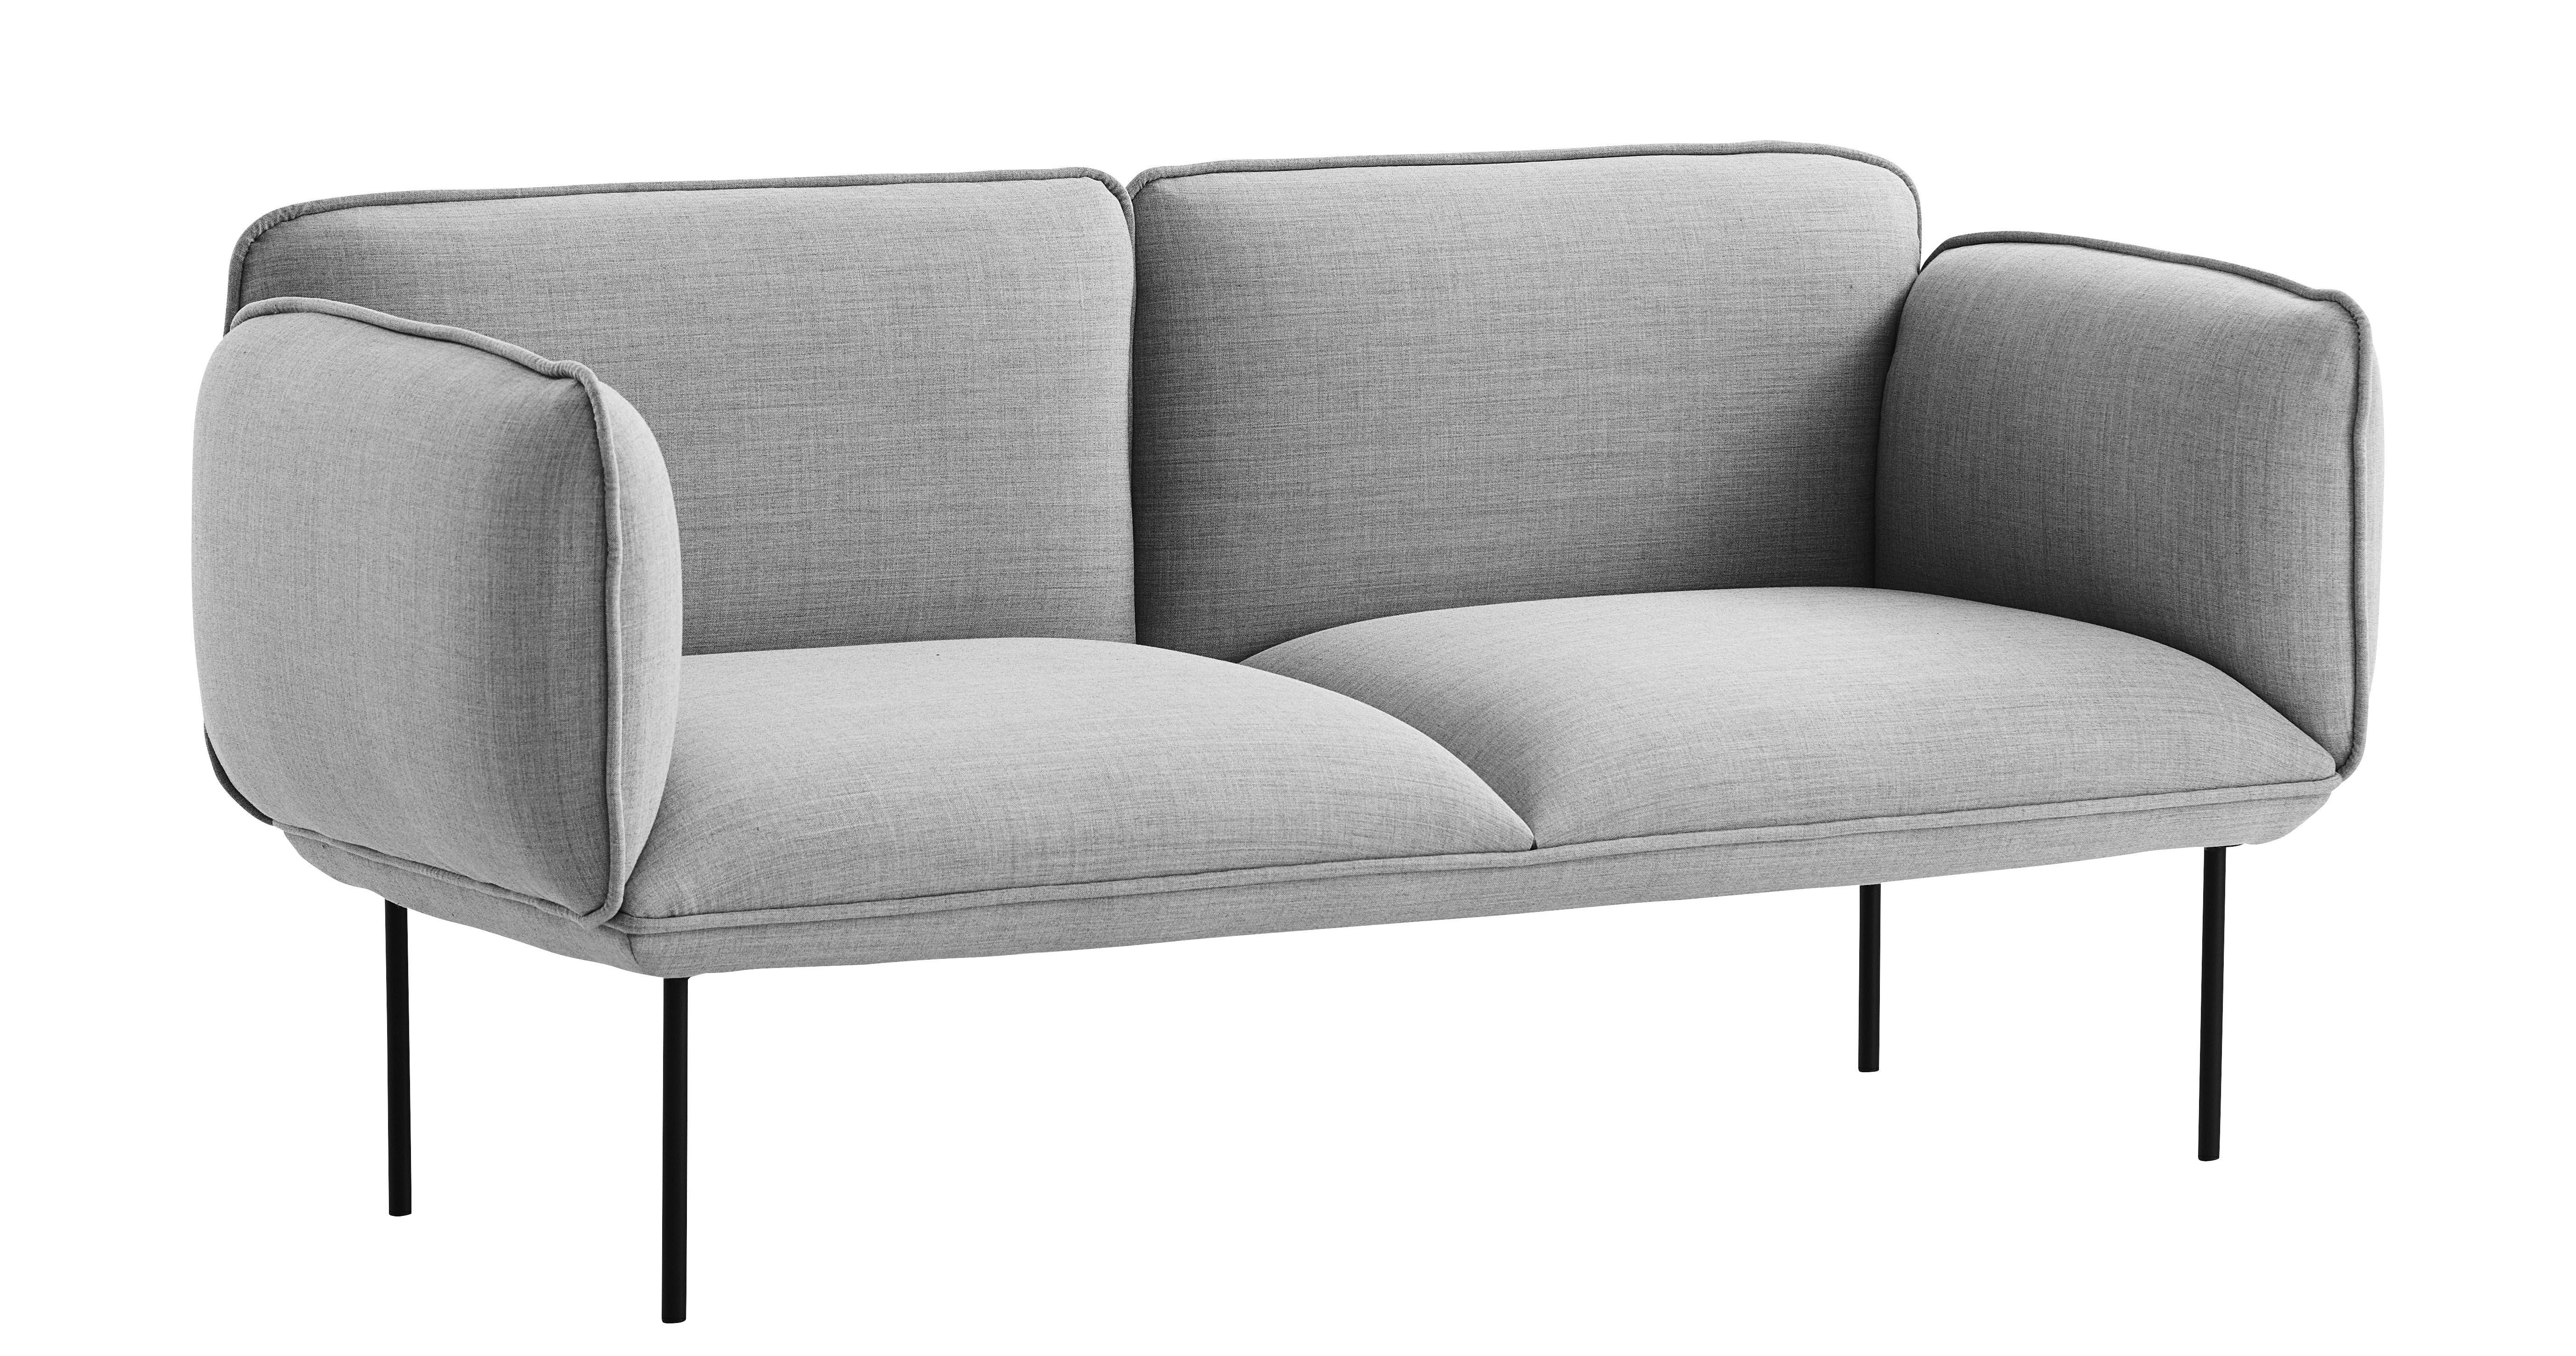 Furniture - Sofas - Nakki Straight sofa - 2 seaters - W 180 cm by Woud - Grey - Fibre, High resilience foam, Kvadrat fabric, Metal, Plywood